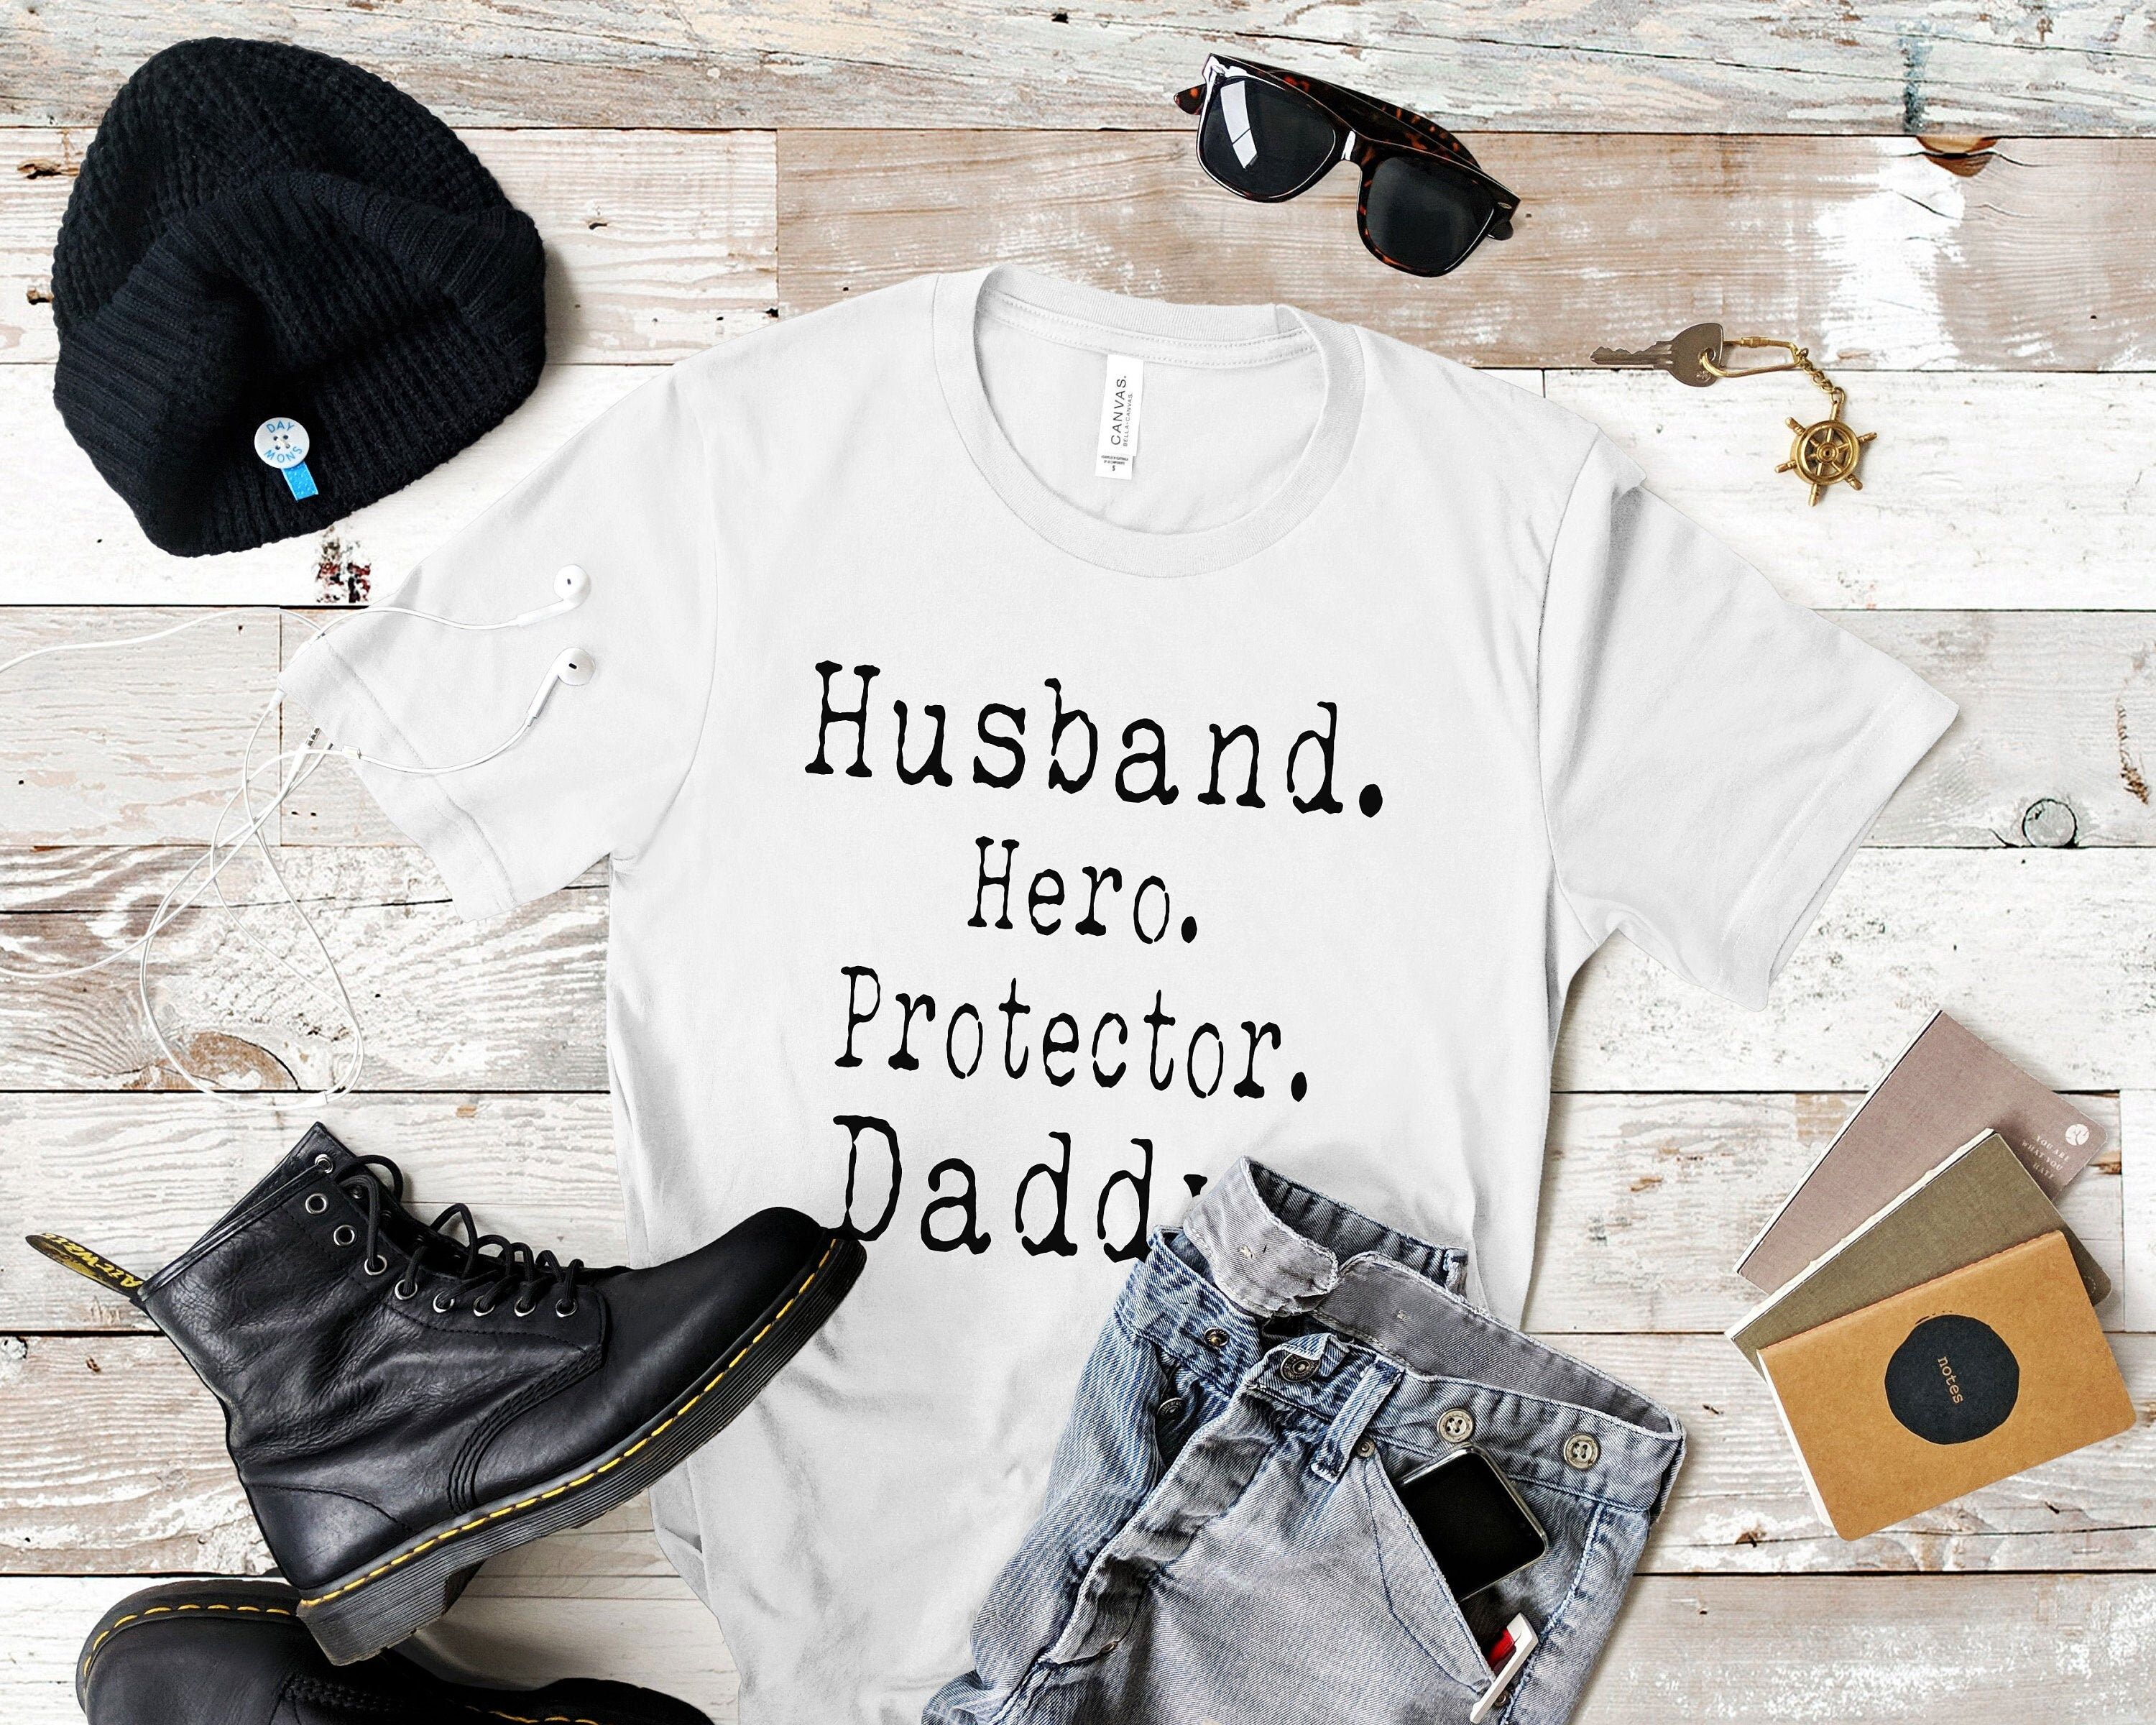 Husband, Protector, Hero & Daddy T-Shirt by ChubbyRhino Fathers are more than just Dad's, they're Husbands's, Protector's and most importantly Hero's! Tell him how much he means to you with this perfect Fathers Day Gift T- shirt. We only use the highest quality tees for all of our designs, we want you to feel as good as you look! They're super soft and incredibly comfortable which is why we have invested in only the best products. These tees are super versatile... you can roll up your sleeve